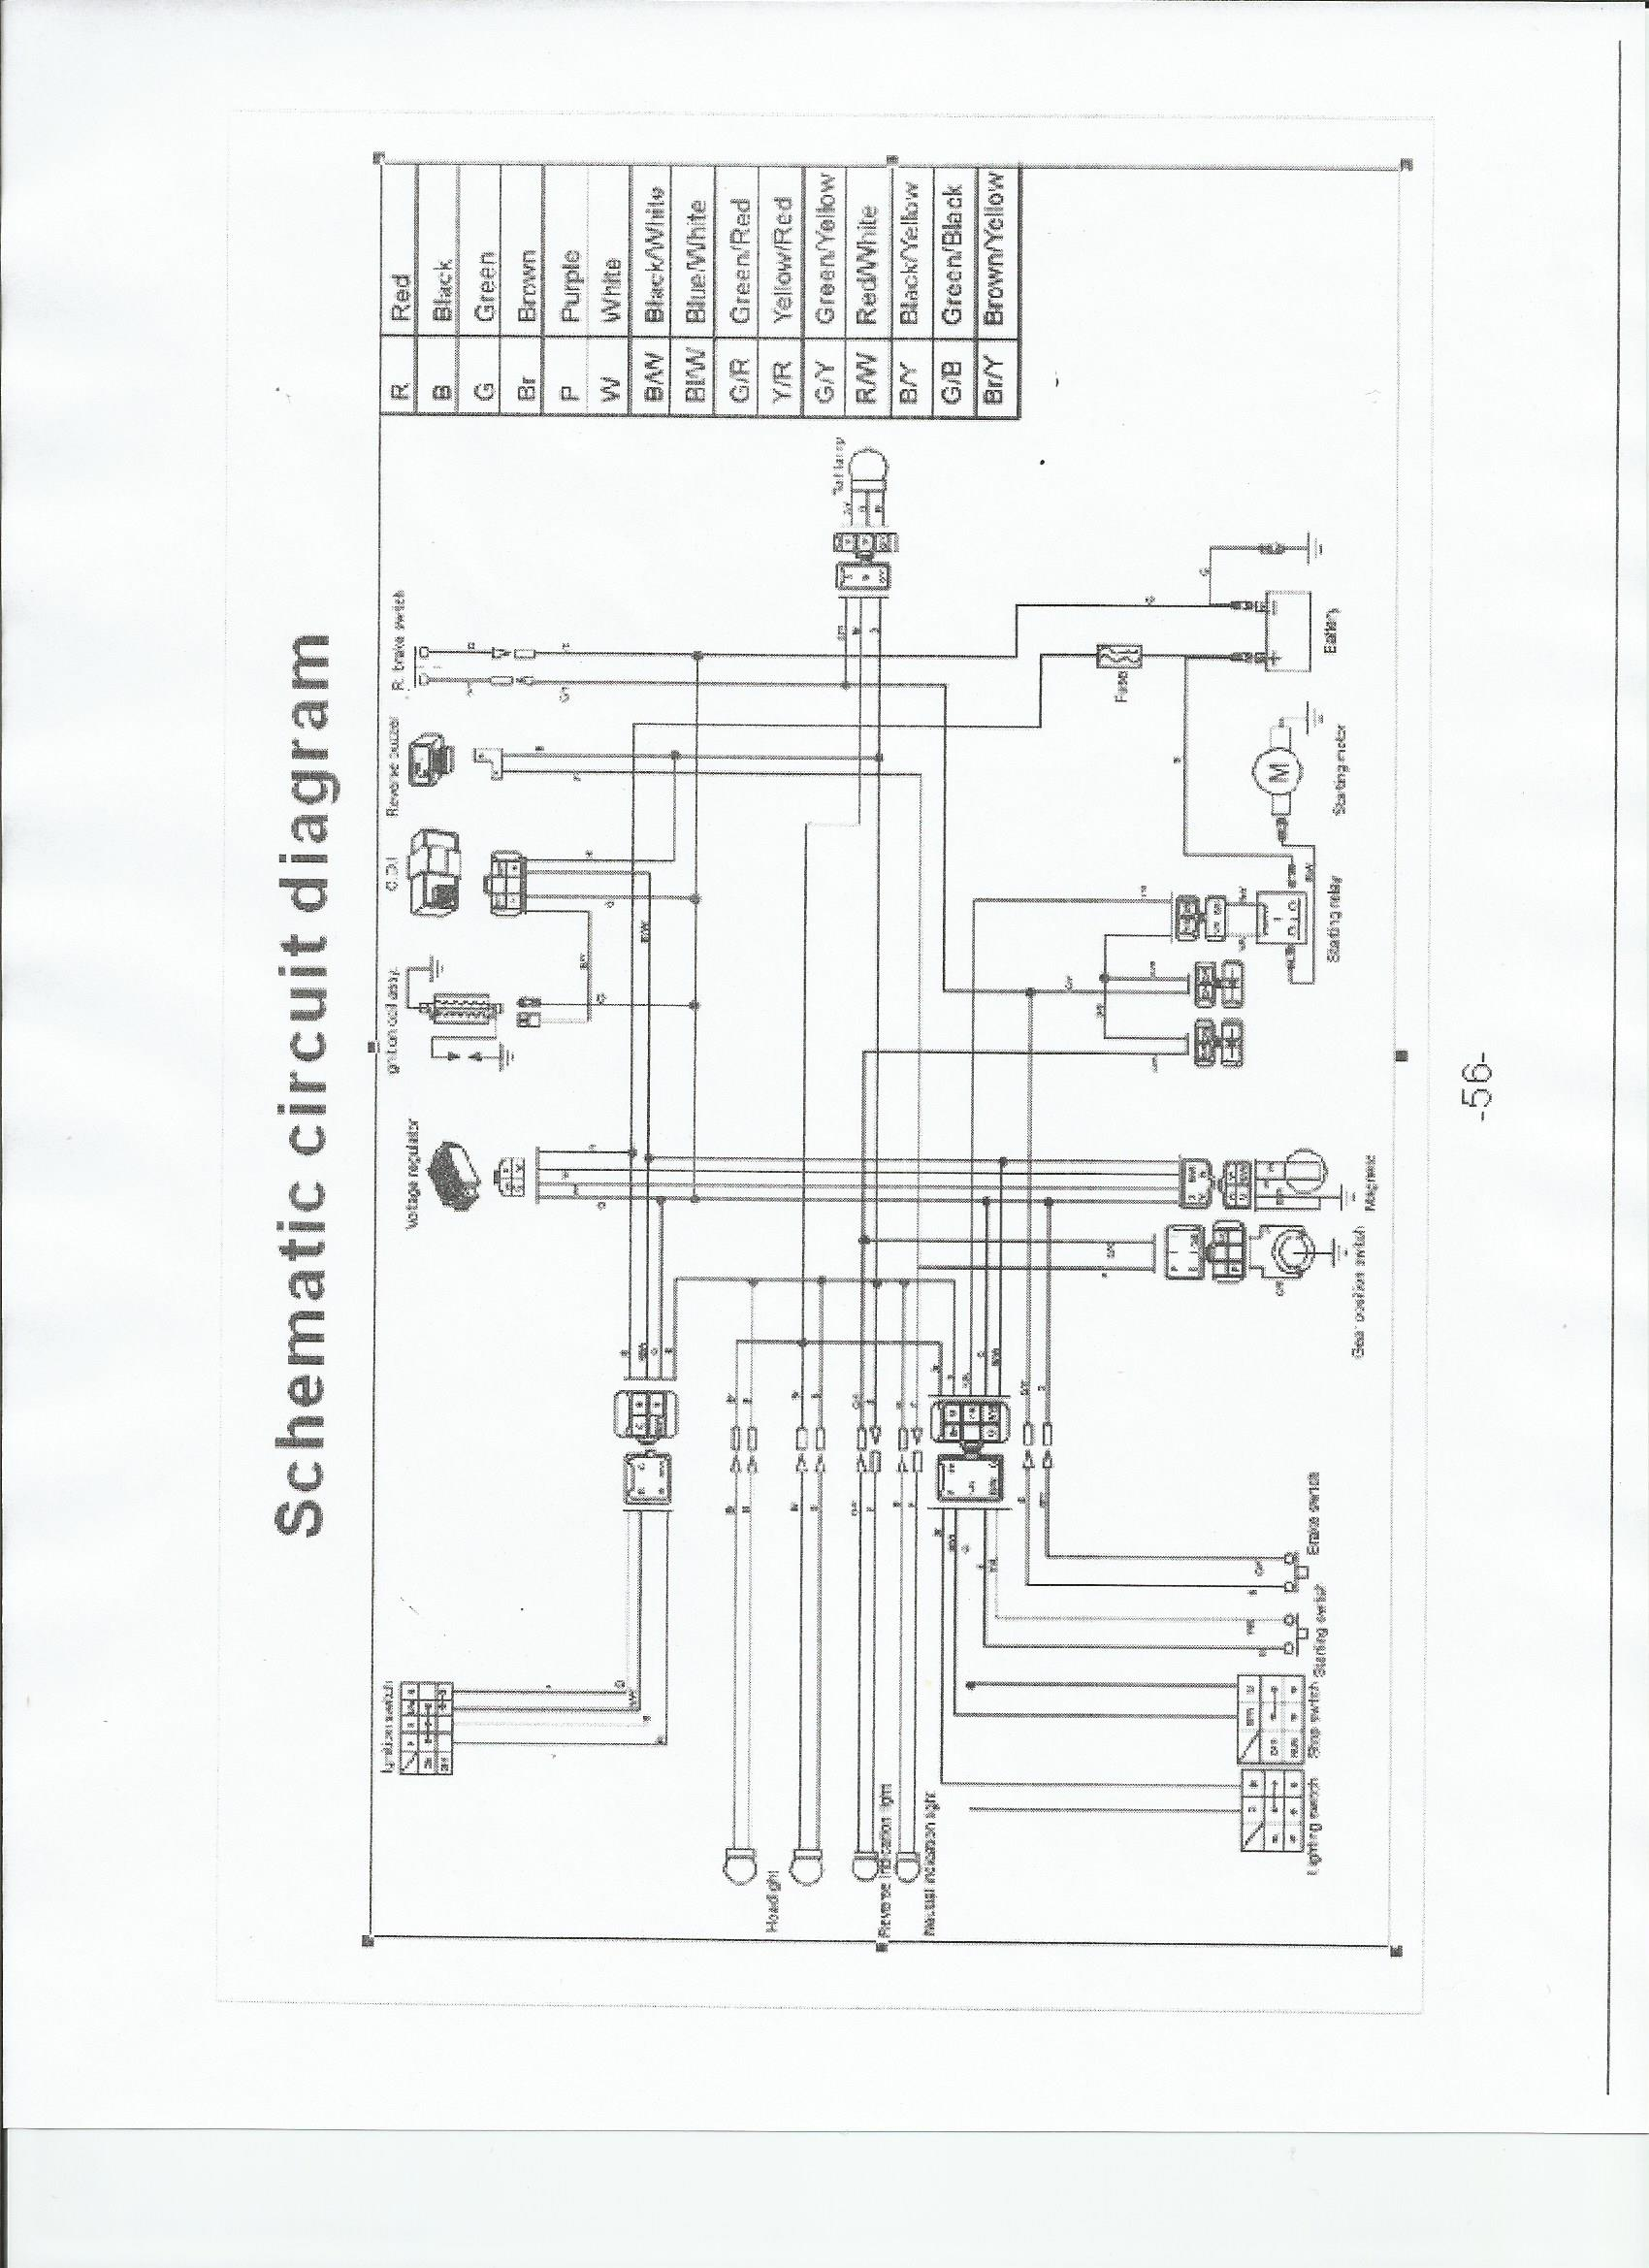 hight resolution of rascal 600 scooter wiring diagram best wiring librarychinese scooter tao wiring diagram wiring diagramstao tao wiring